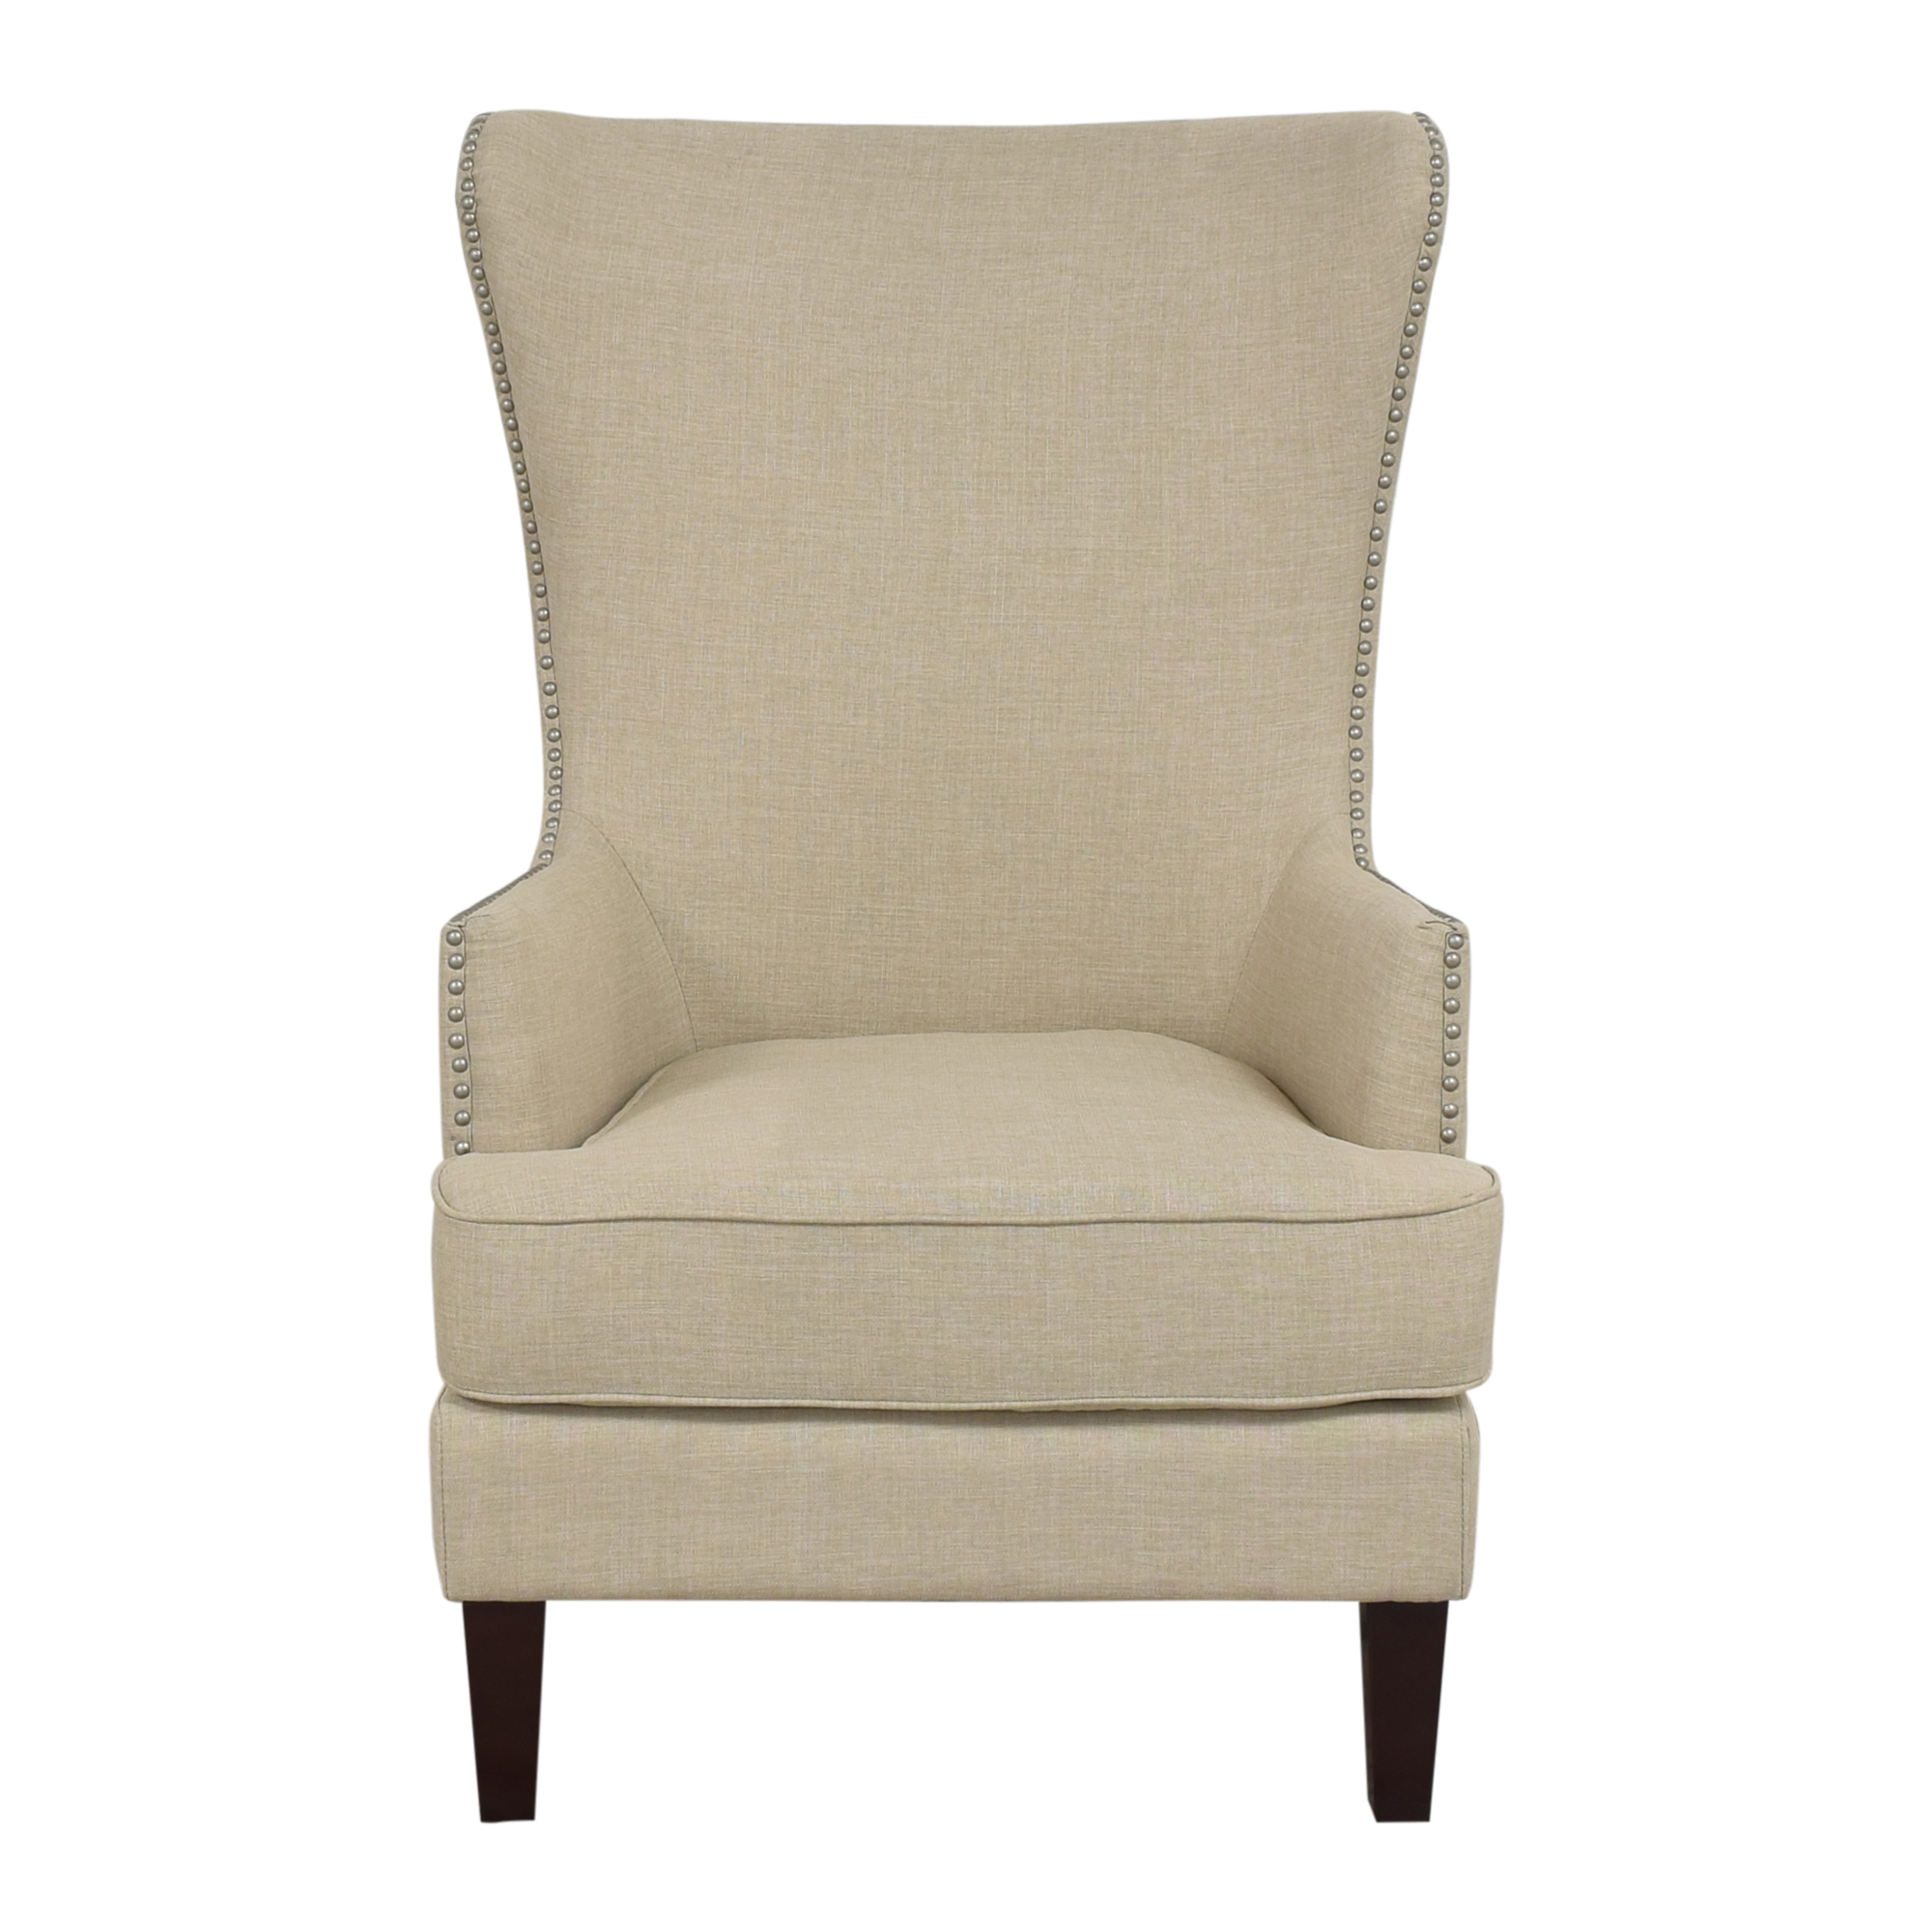 Wing Back Accent Chair price